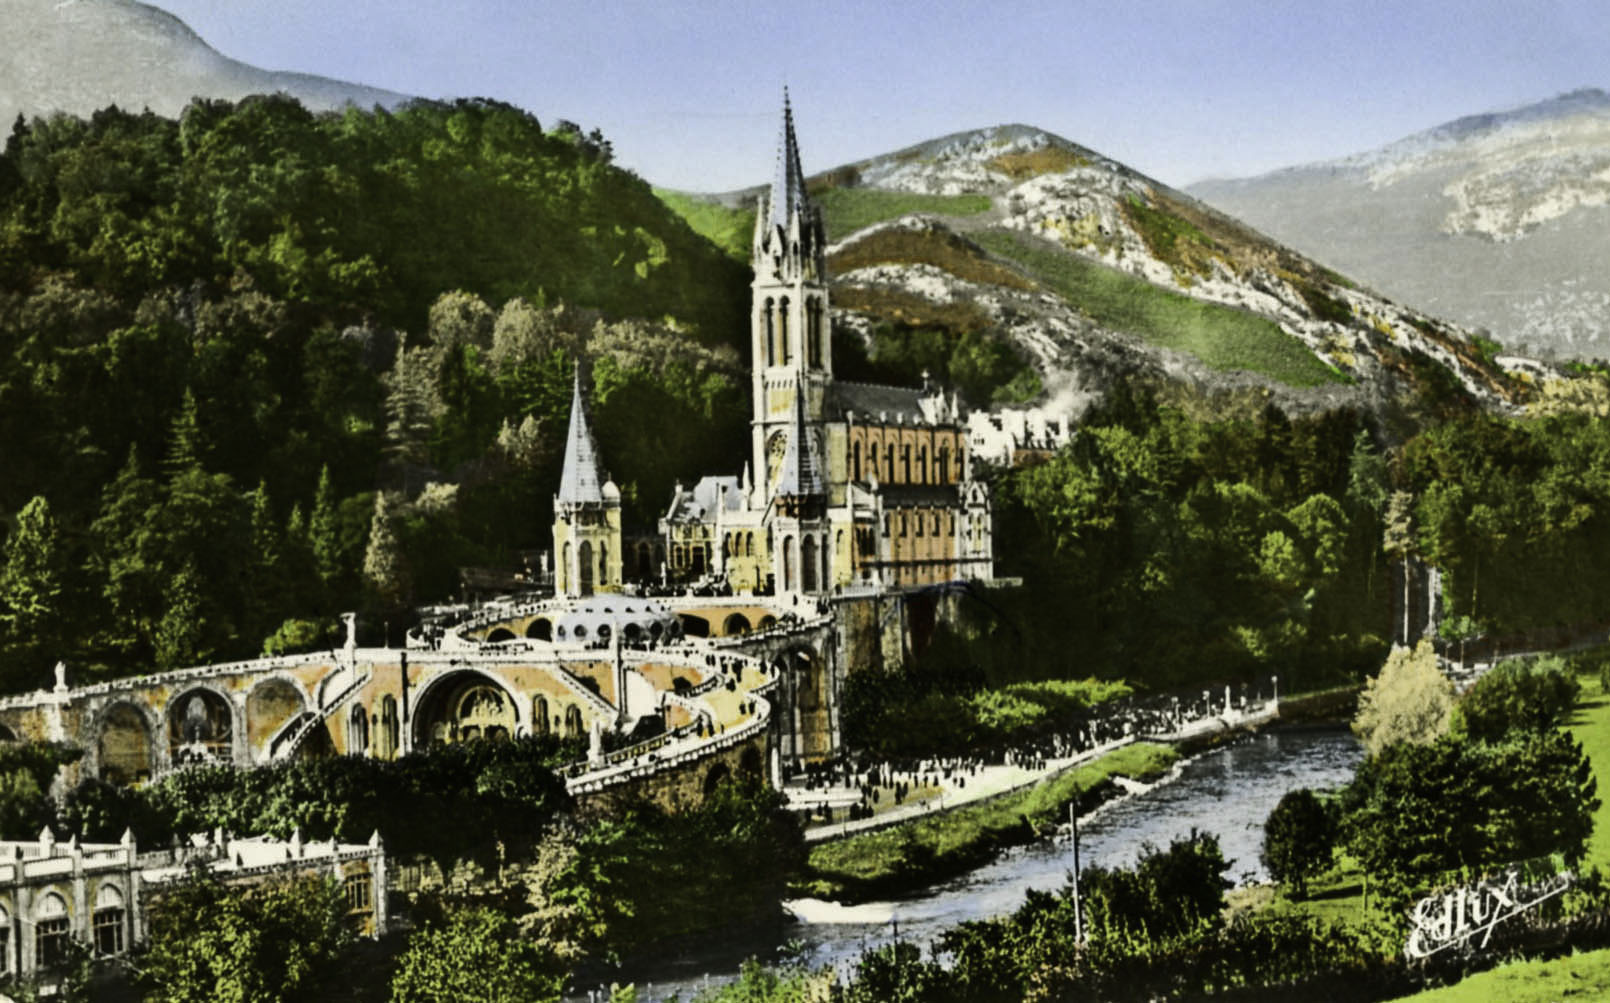 Pilgrimage Site of Lourdes